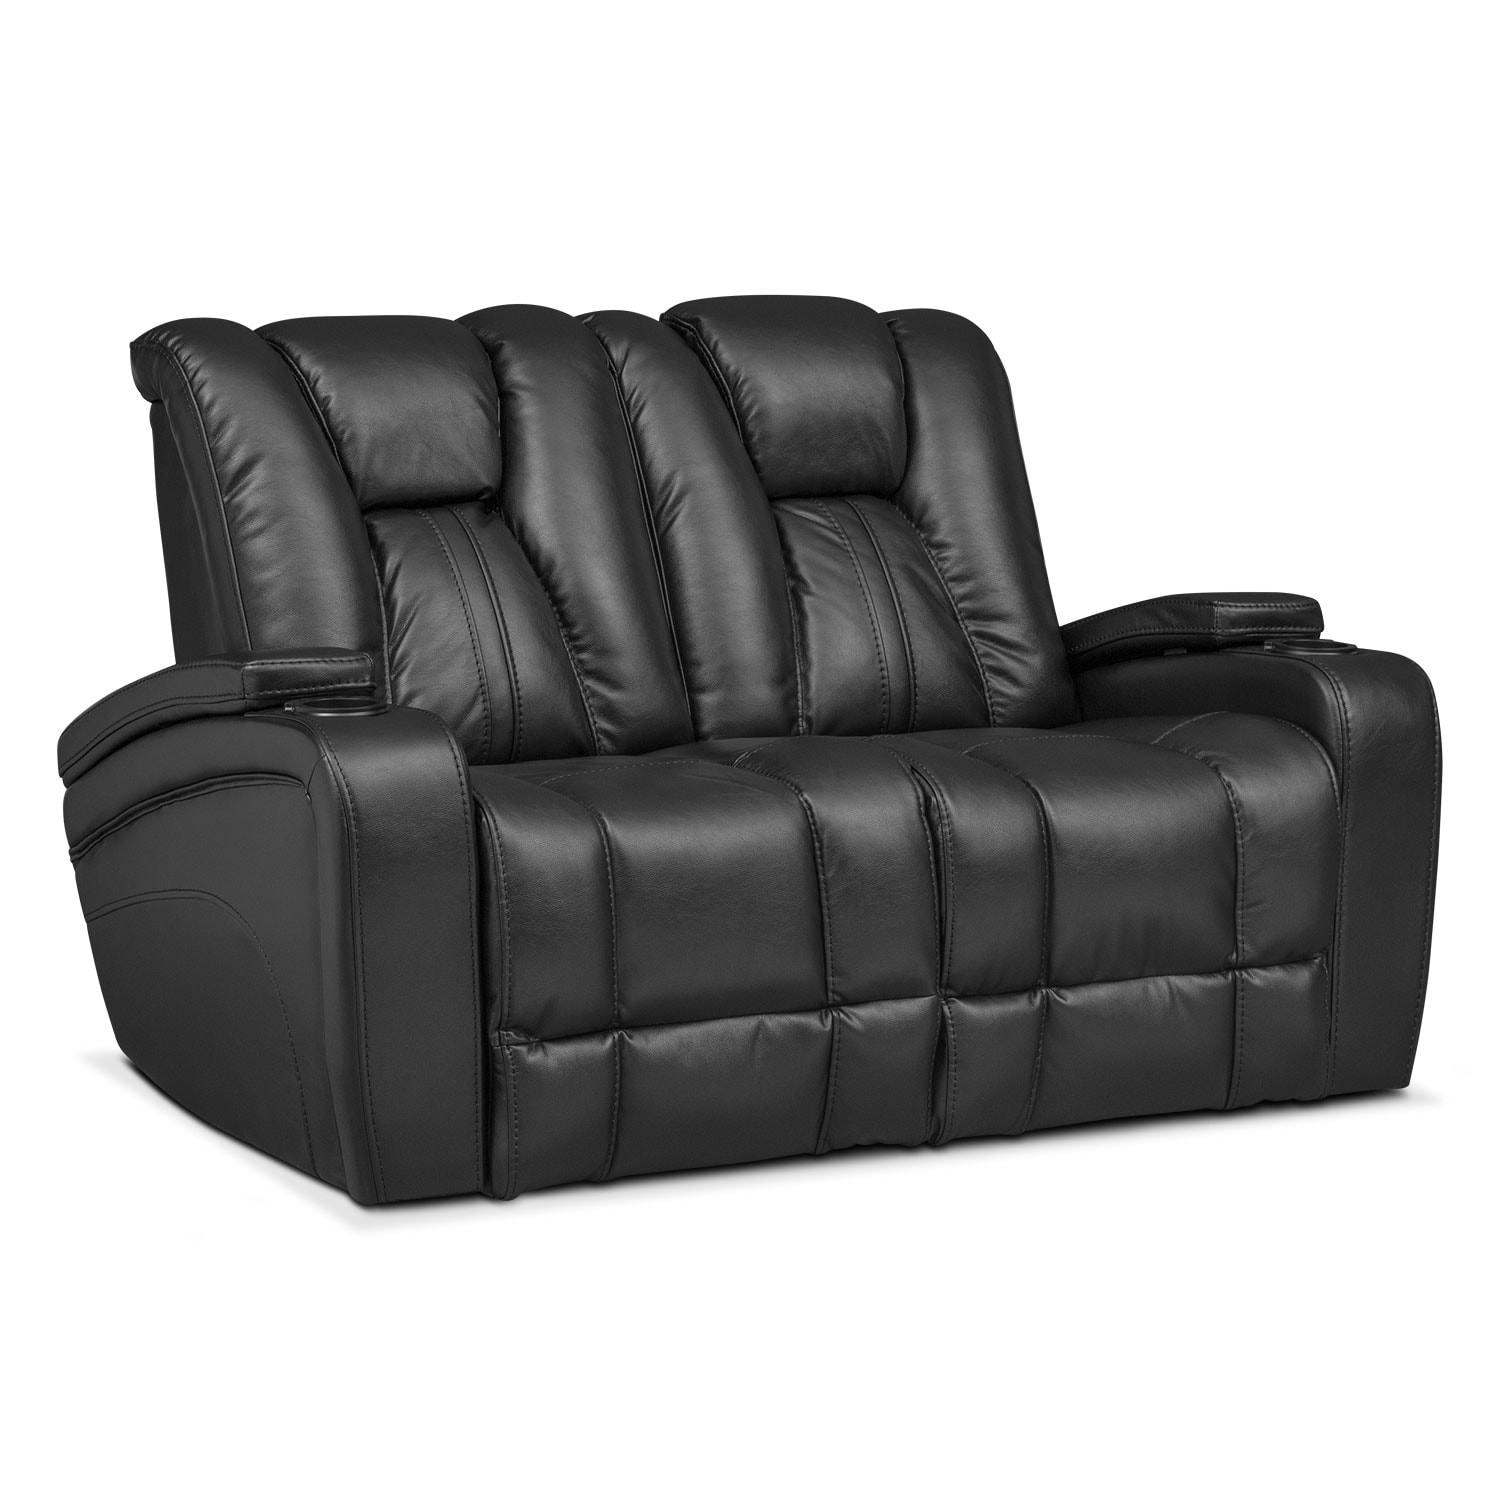 Pulsar Power Reclining Sofa Power Reclining Loveseat And Power Recliner Set Black American